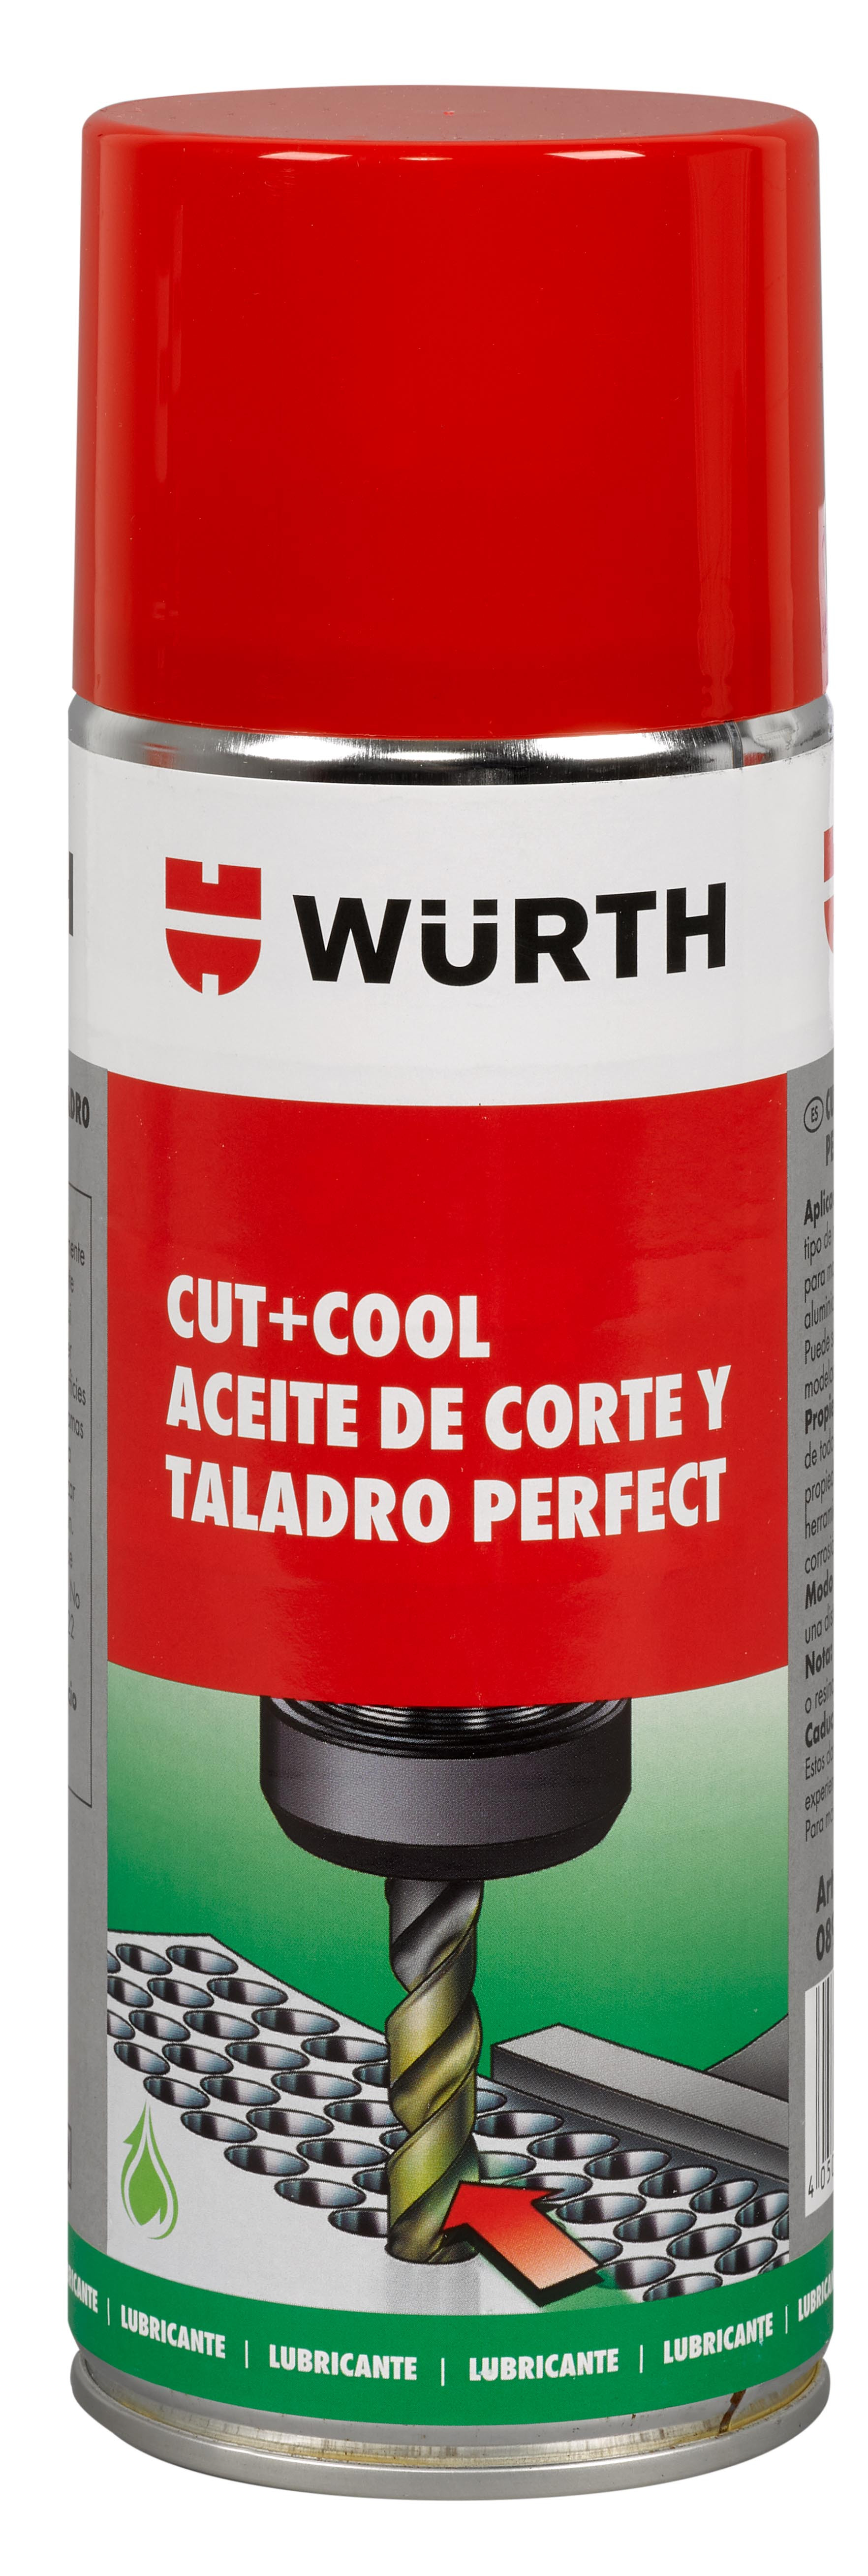 ACEITE CORTE CUT+COOL PERFECT 400ML